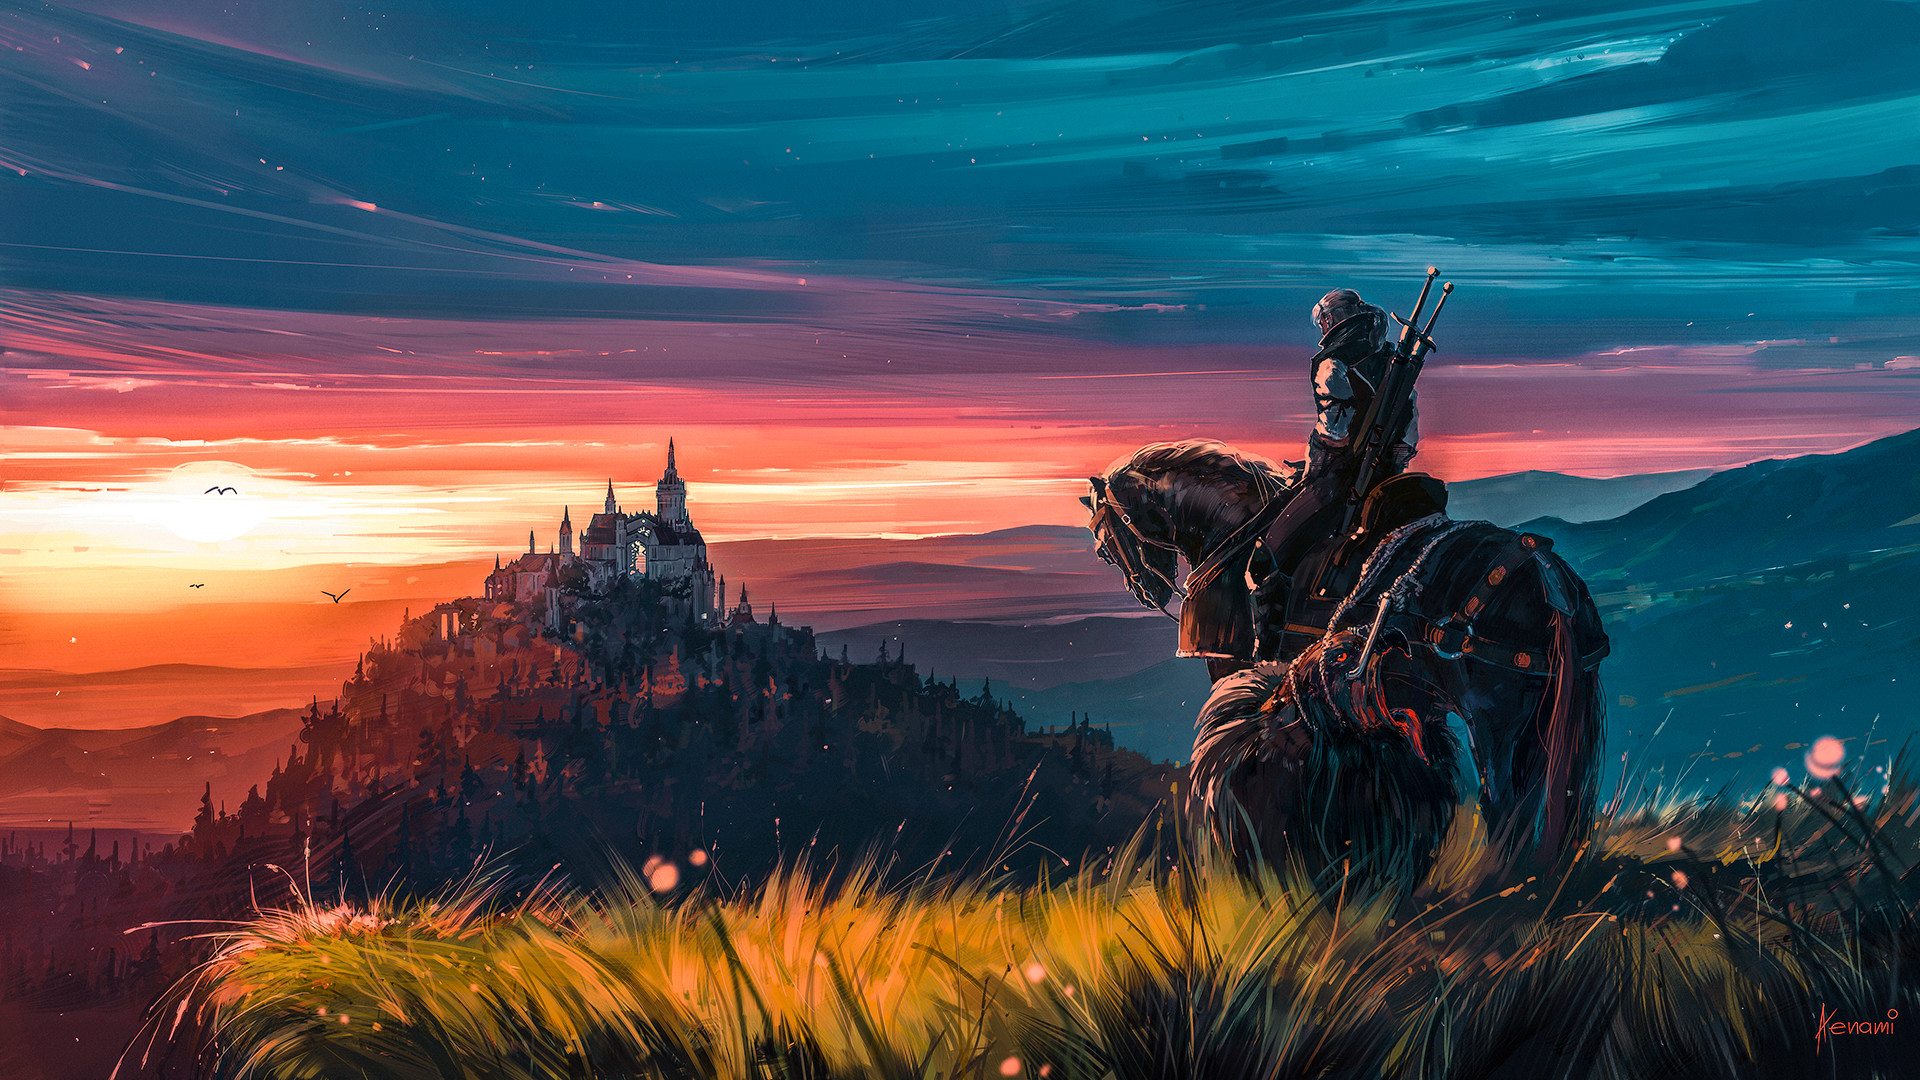 The Witcher 3 Wild Hunt Fanart, HD Games, 4k Wallpapers